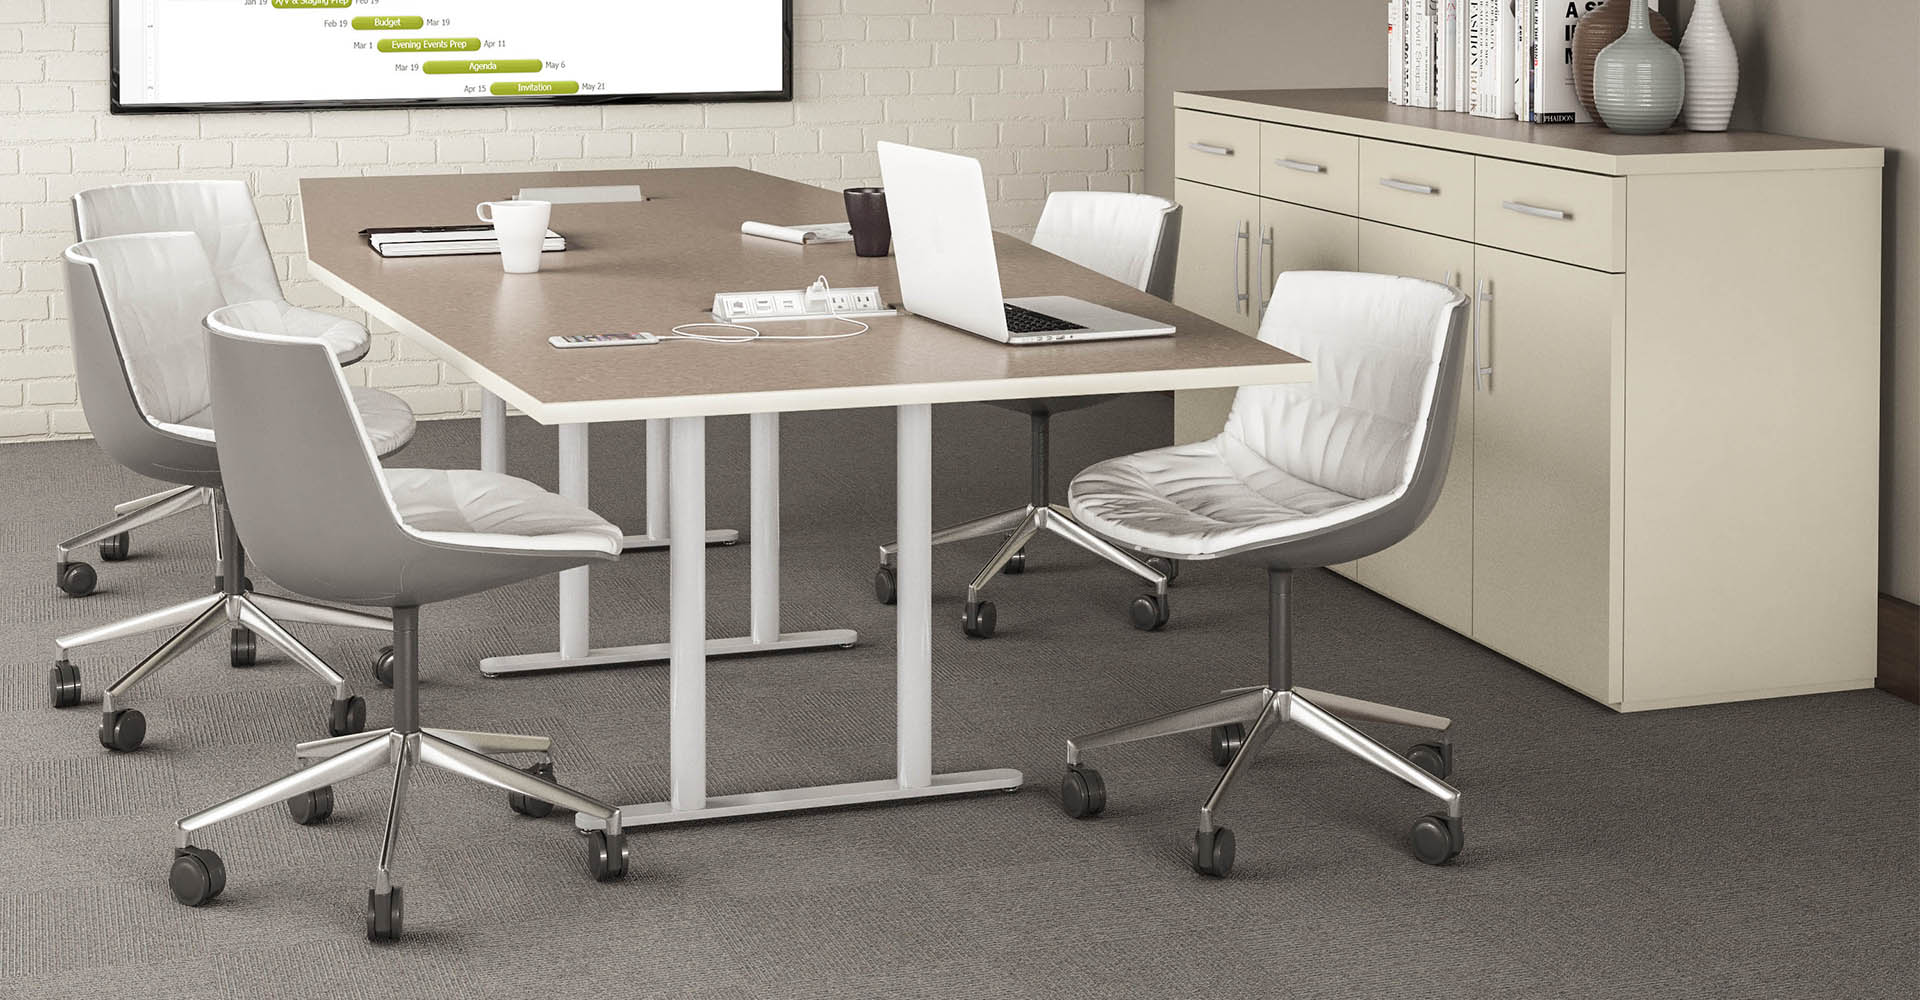 Discount Office Furniture Oak Park Mi New Office Depot Chairs Image For Folding 147 Editor